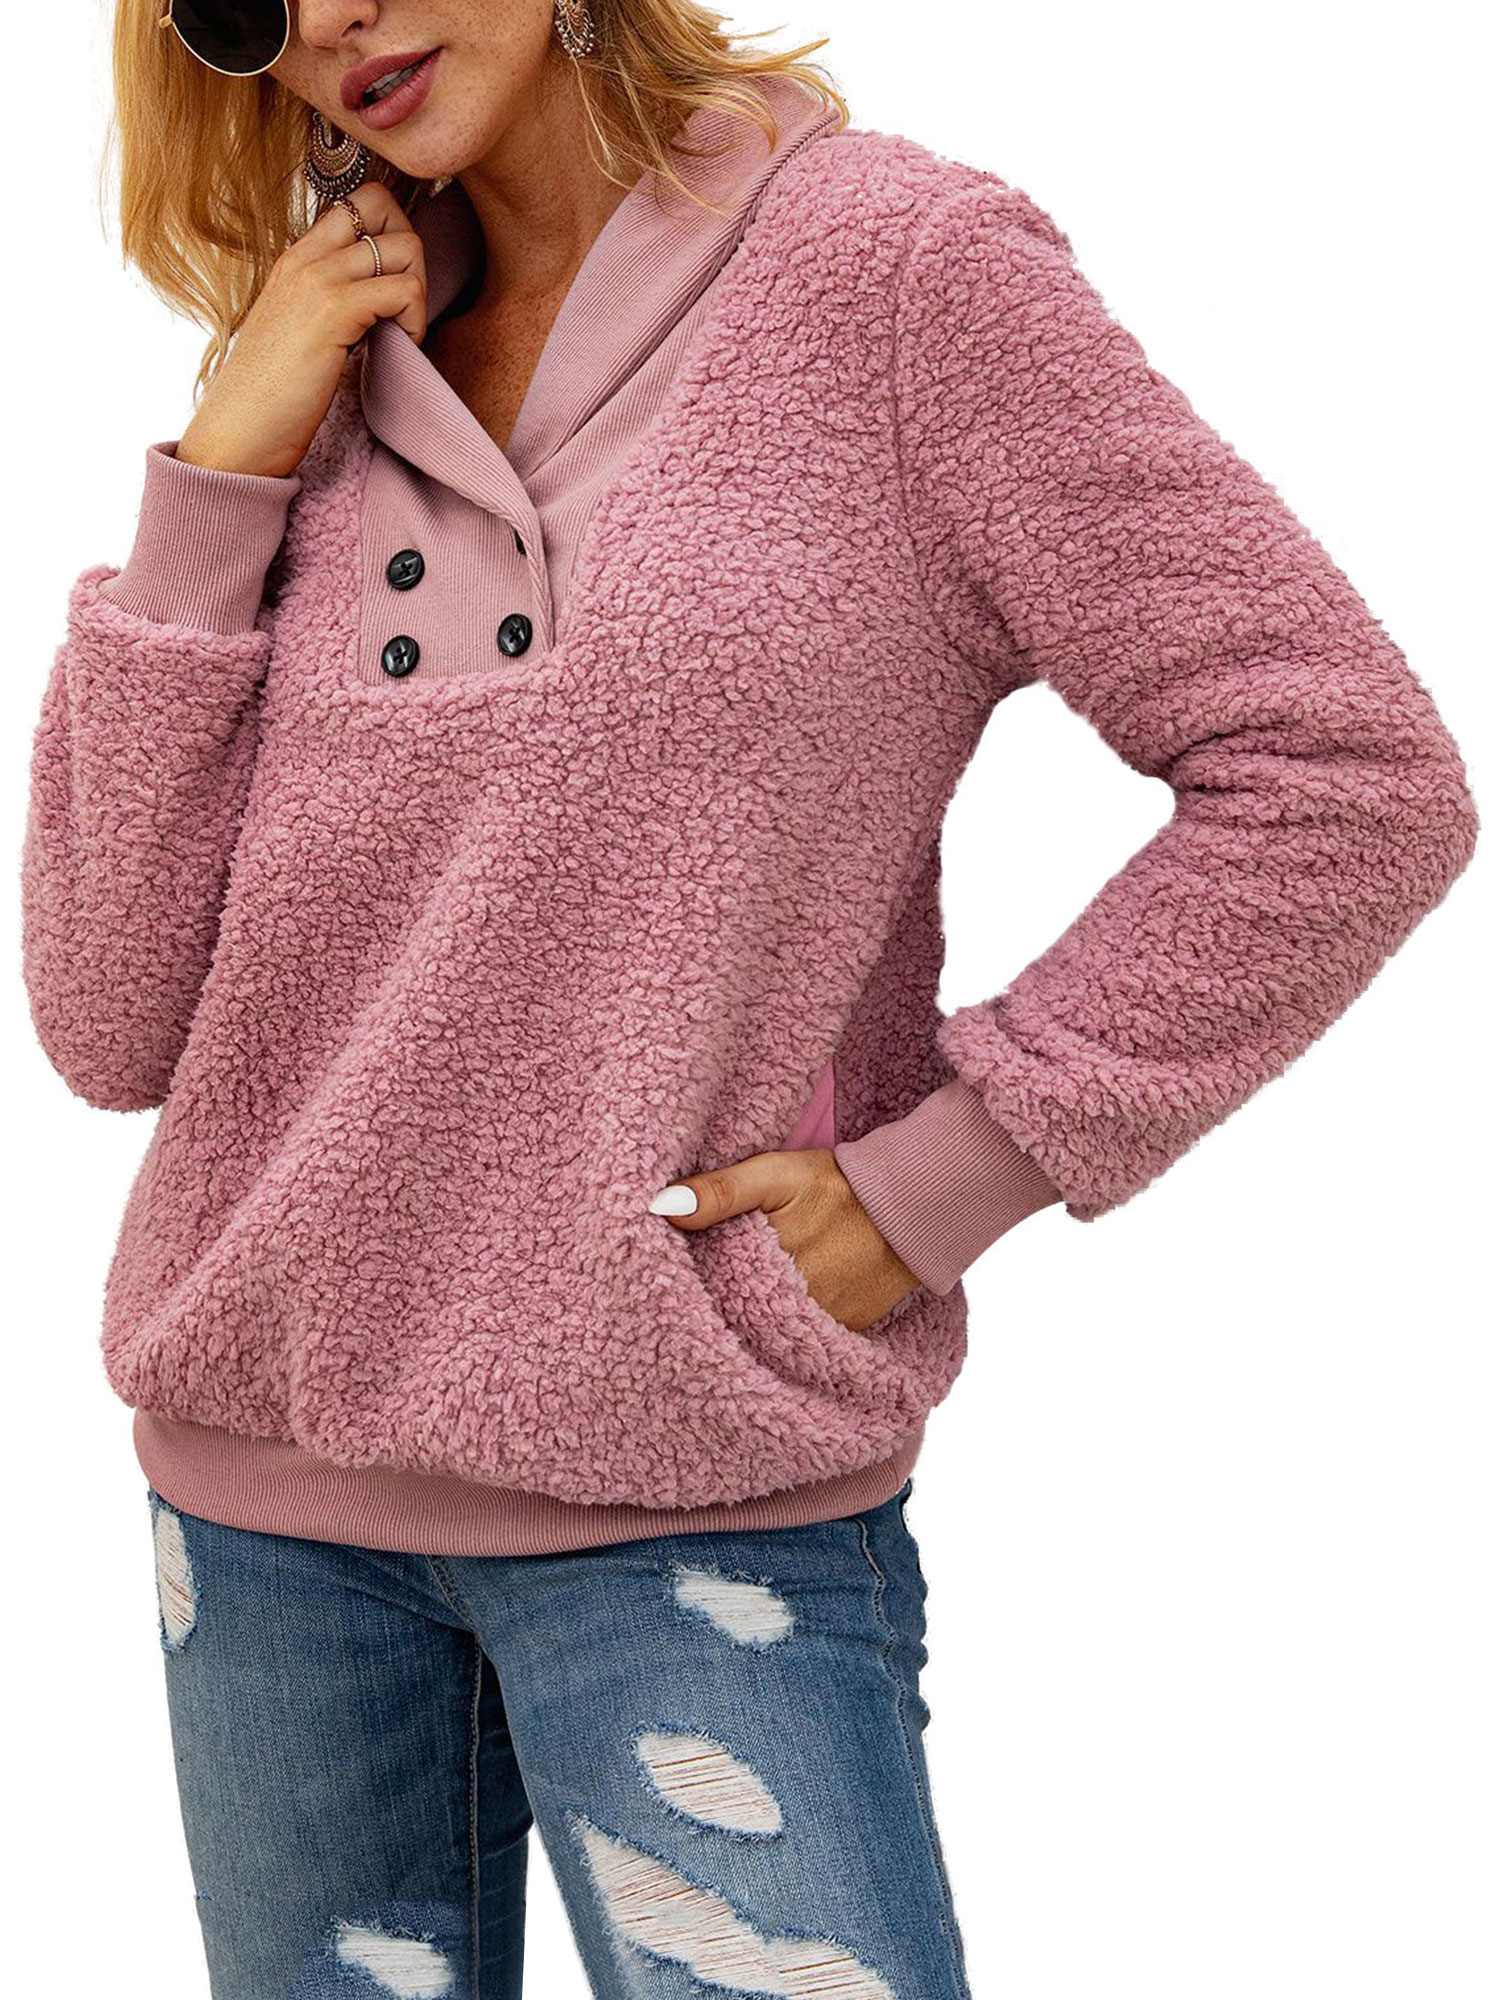 Women Winter Fleece Hooded Long Sleeves Pocket Casual Sweater Top Blouse Outwear